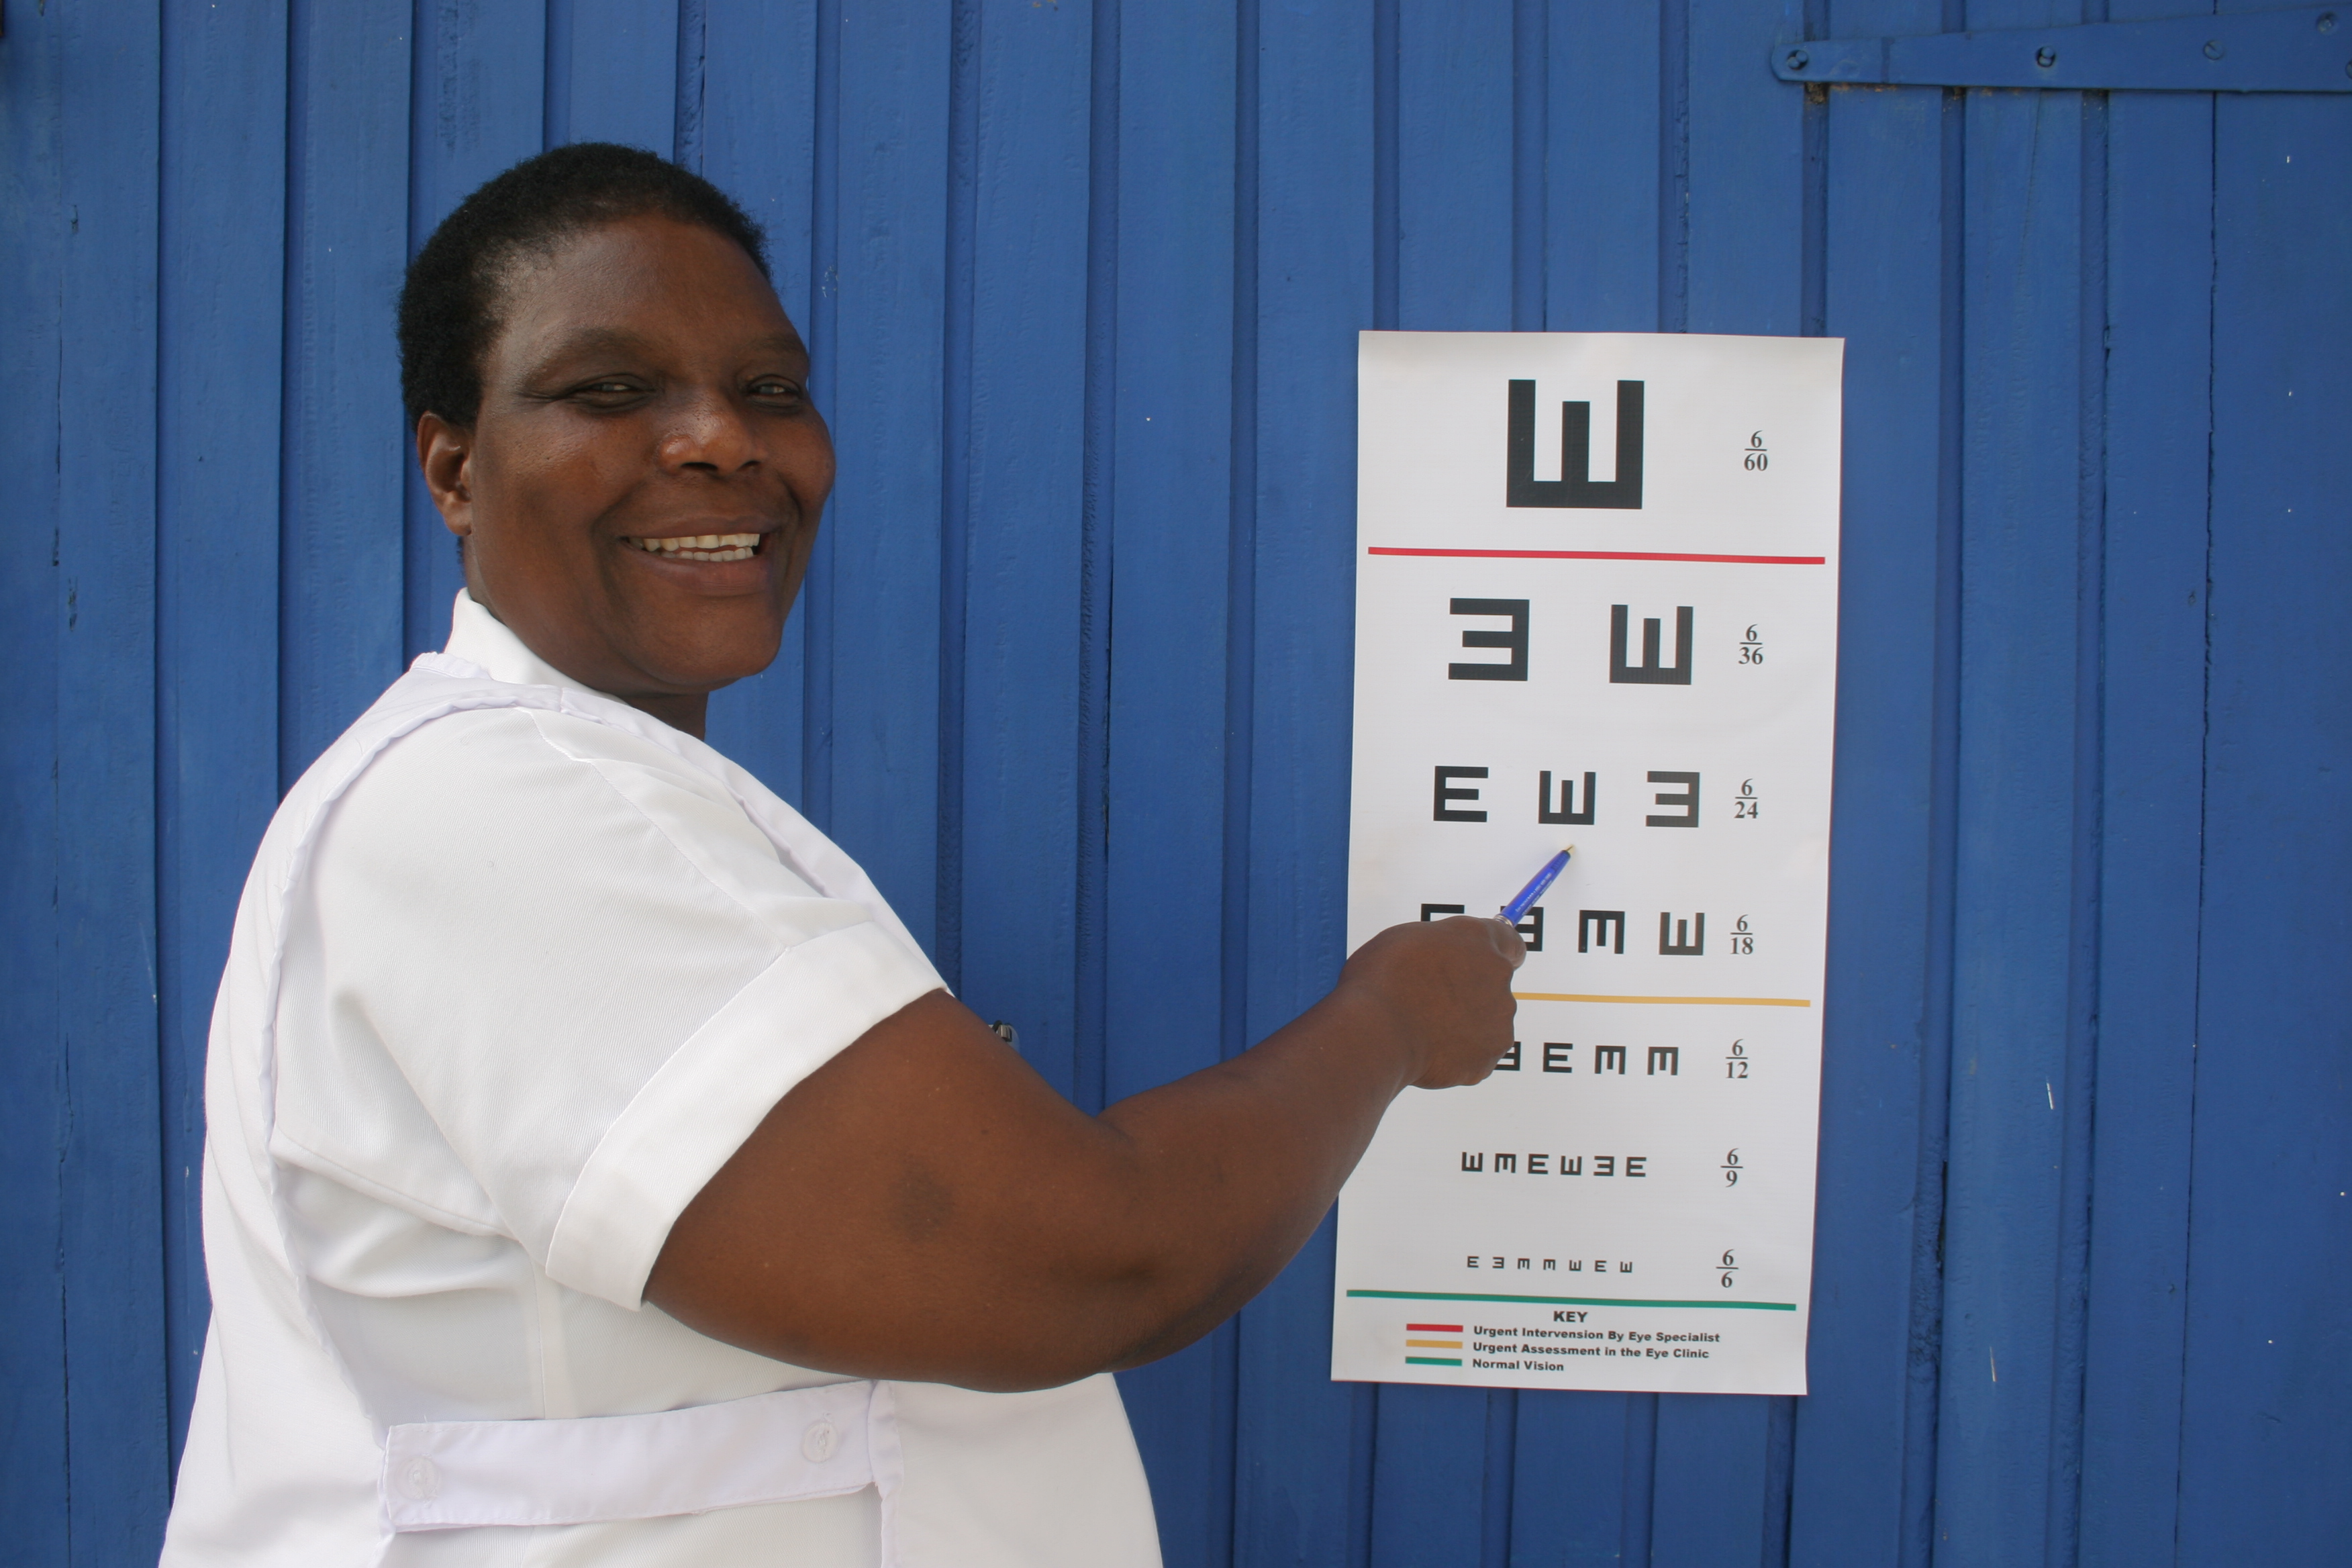 Ophthalmic Nursing School Project in Ghana will strengthen ophthalmic nursing in Ghana.